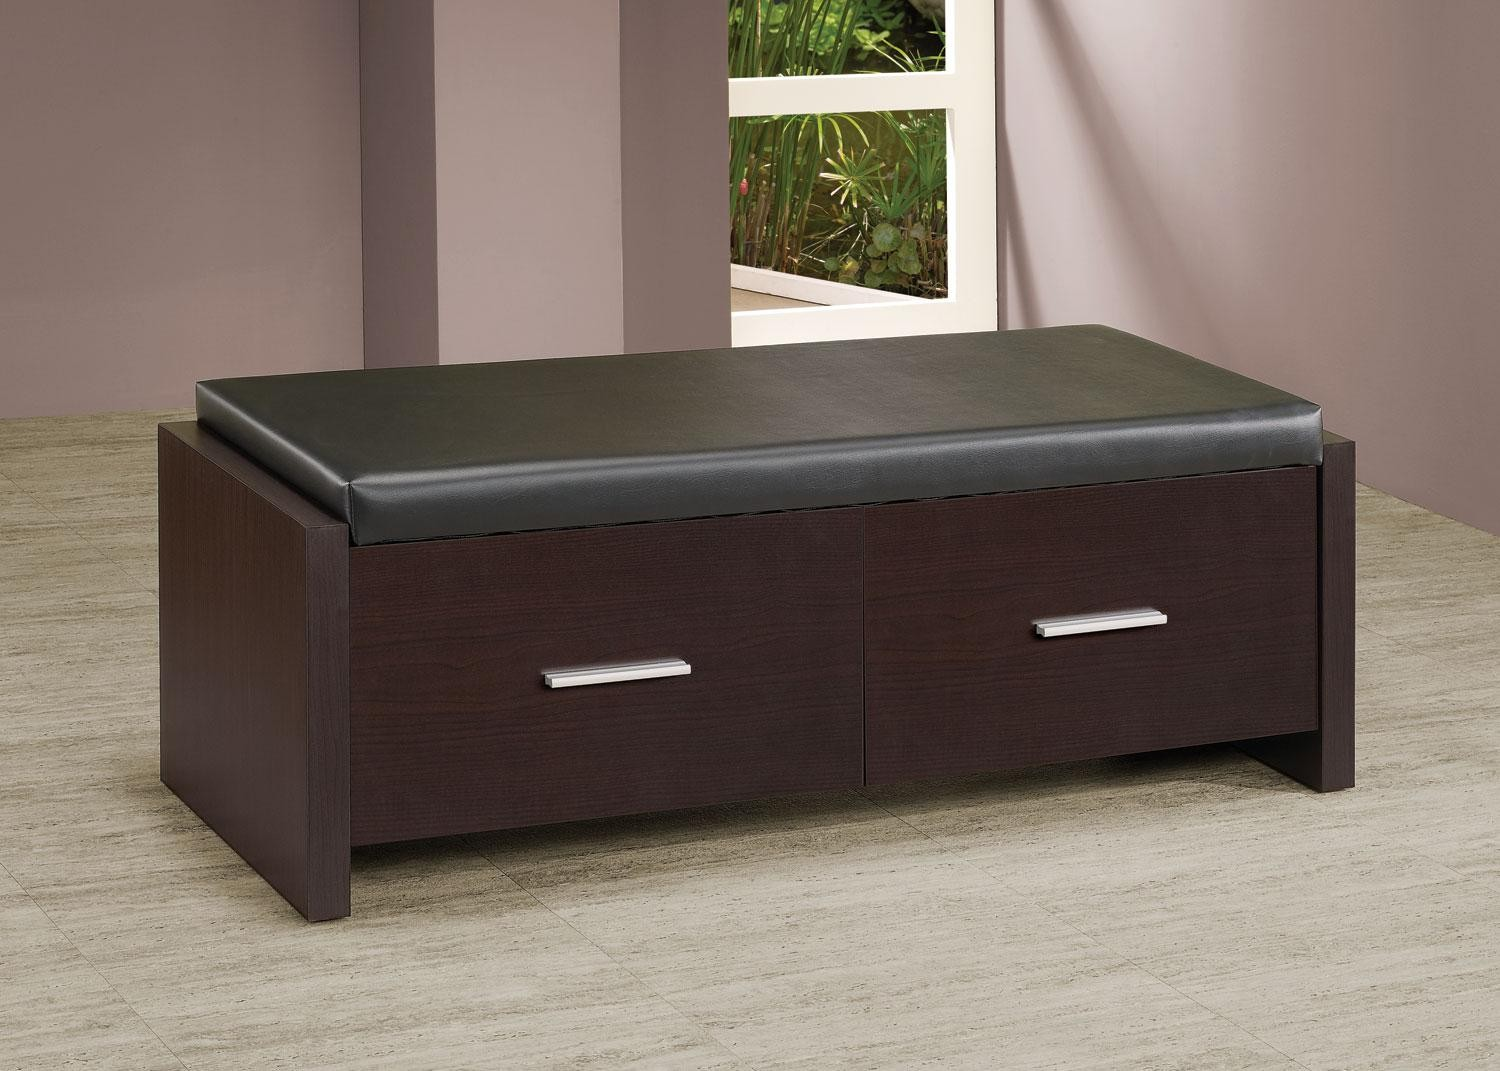 2 Drawer Storage Bench With Padded Seat 508002 Coaster Furniture